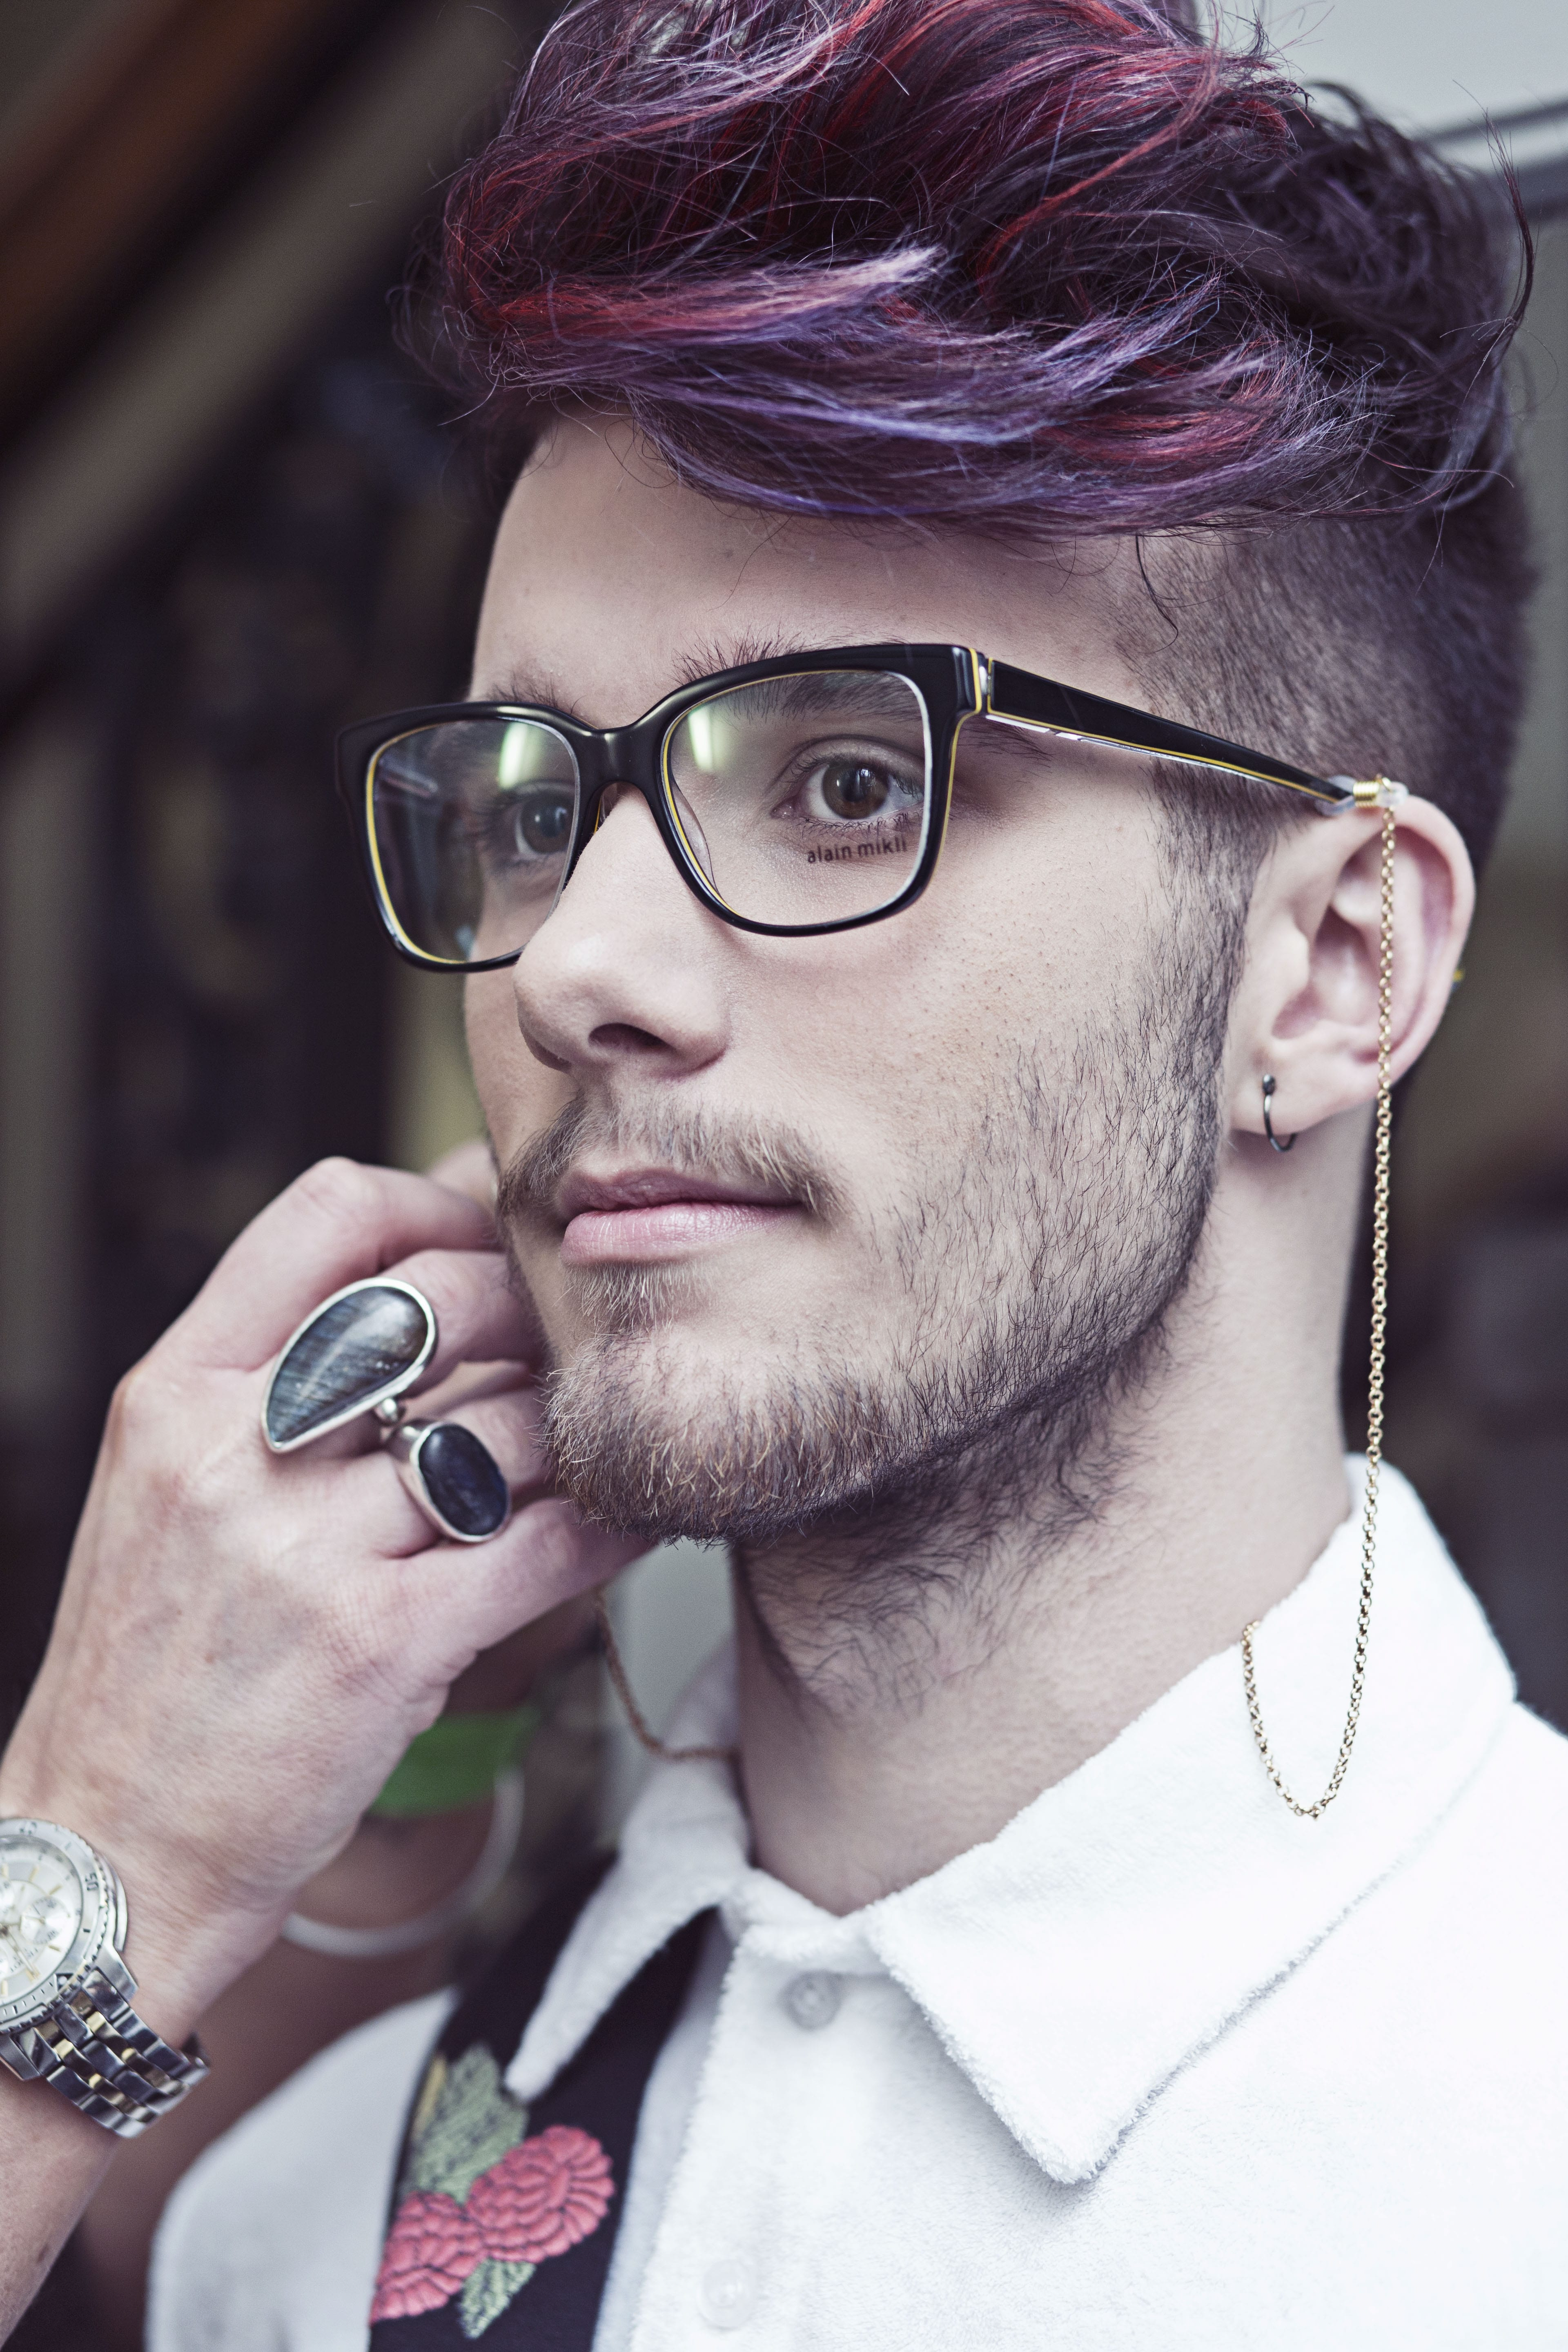 man wearing glasses and purple hair